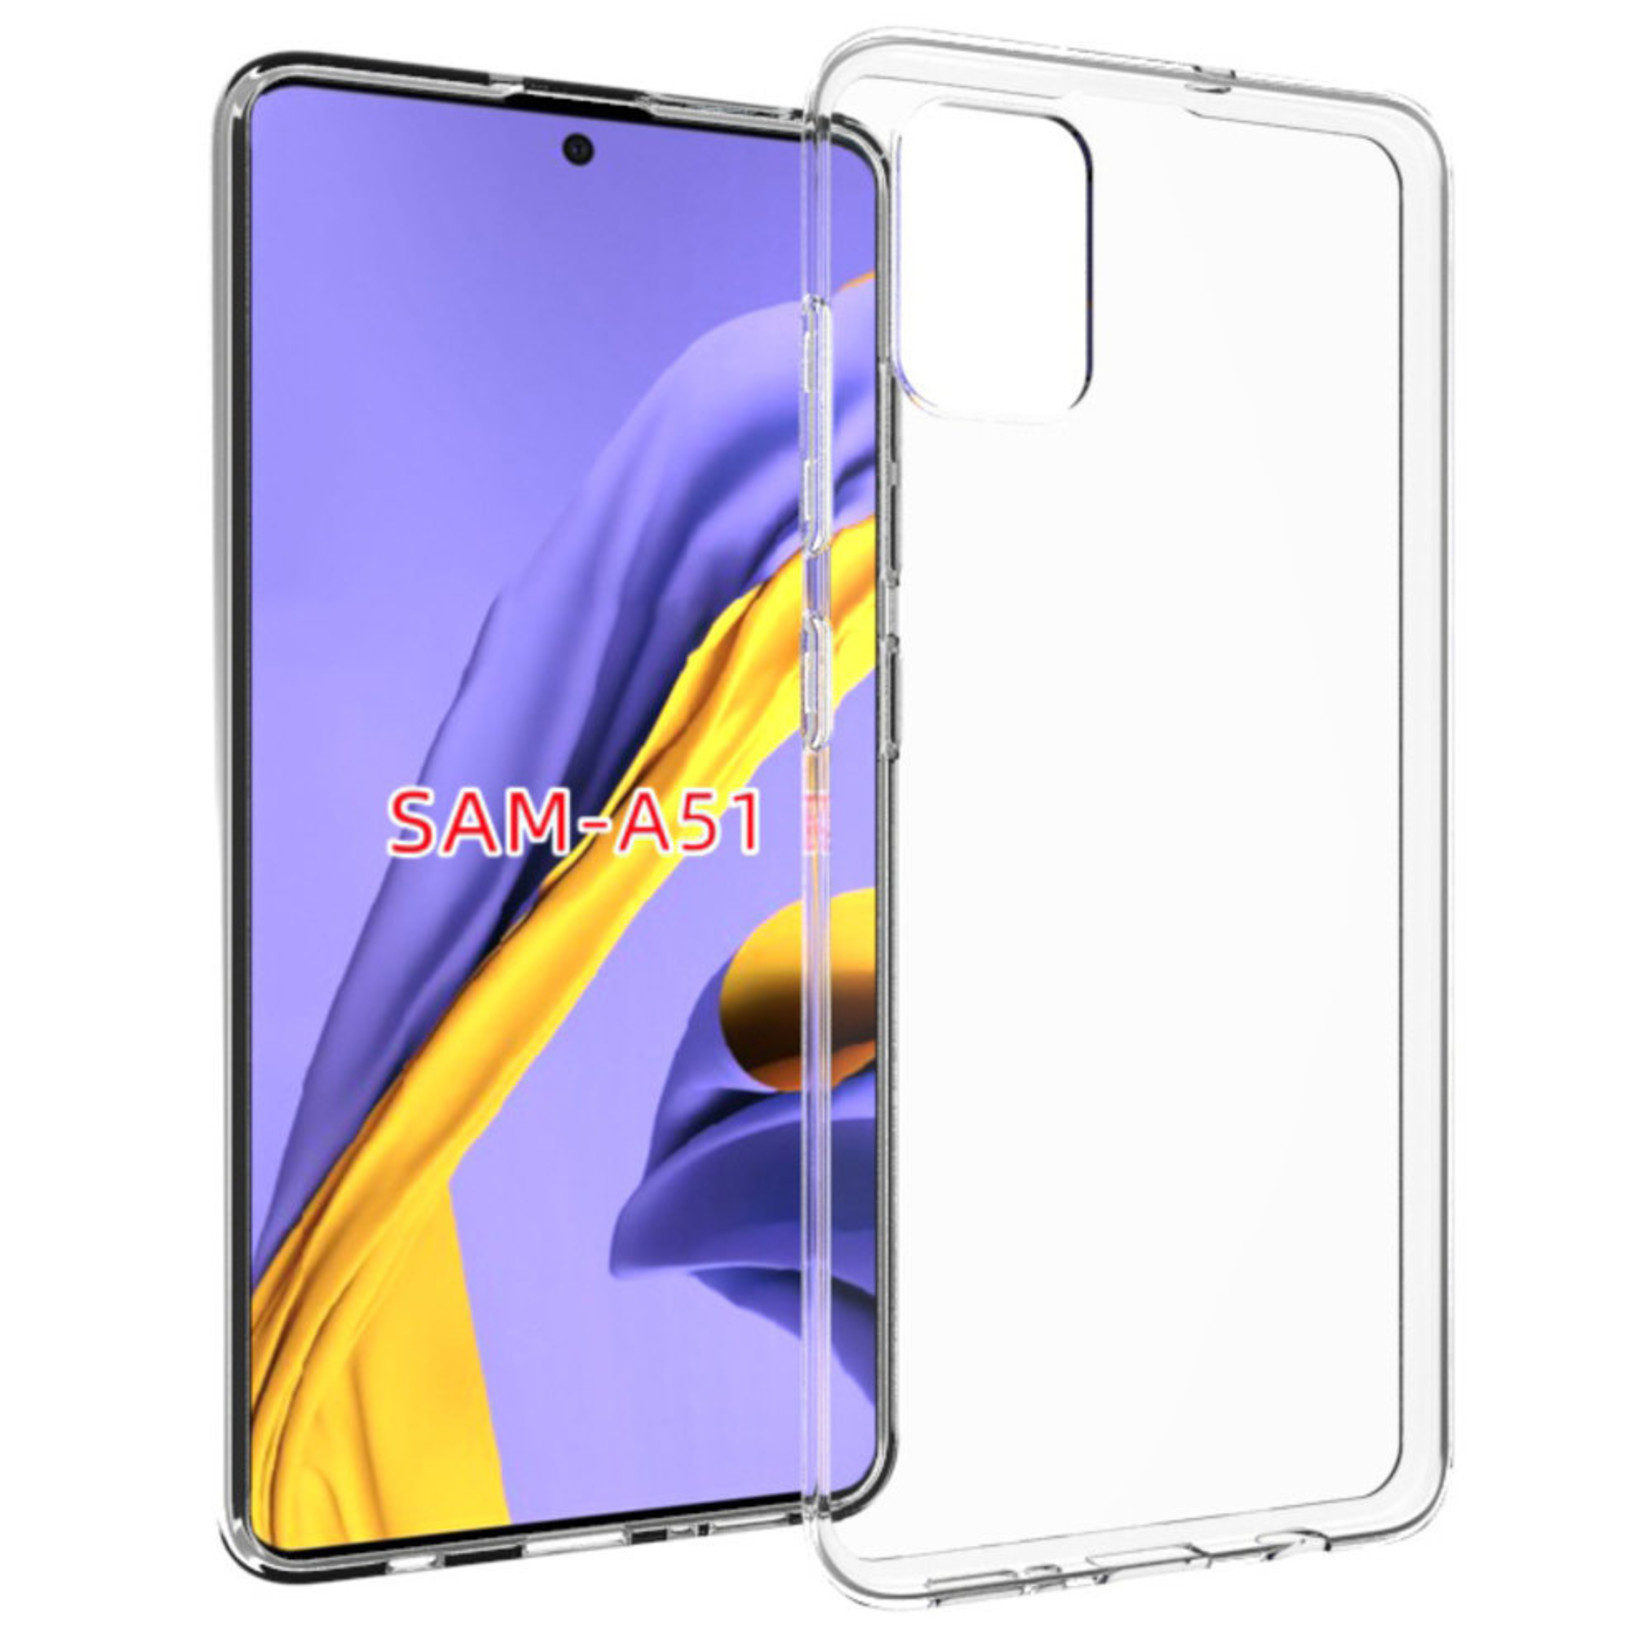 Colorfone Hoesje Coolskin3T voor Samsung A51 Transparant Wit